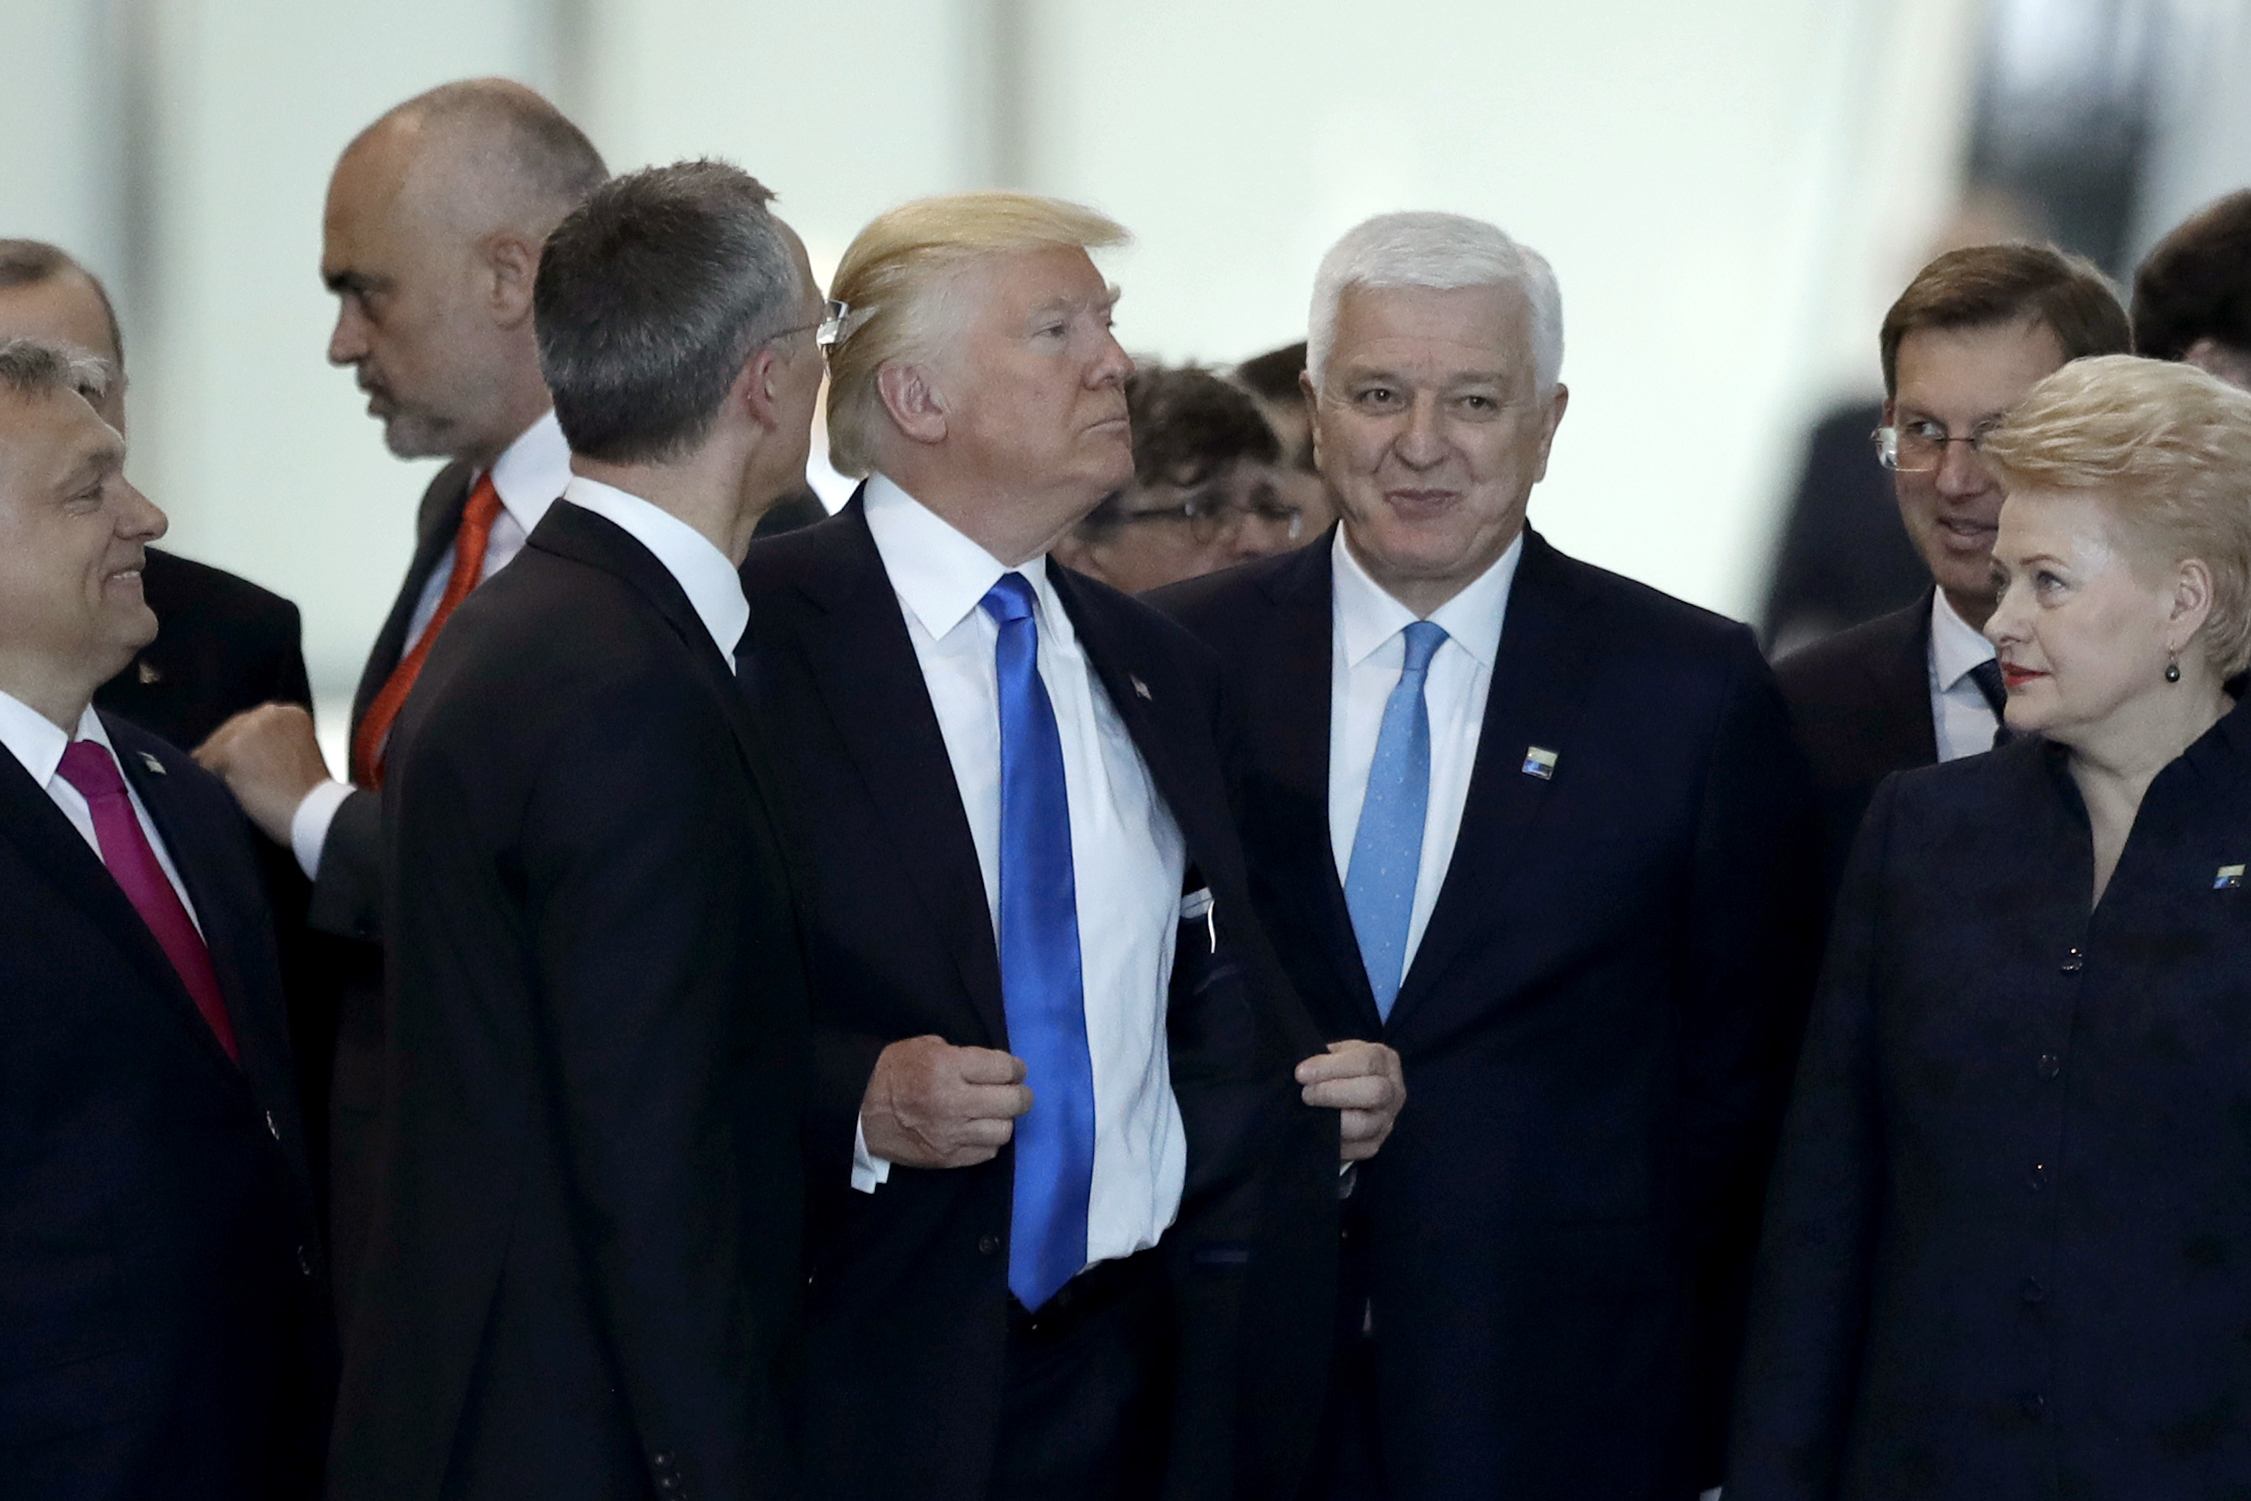 Montenegro Prime Minister Dusko Markovic, center right, after appearing to be pushed by Donald Trump, center, during a NATO summit of heads of state and government in Brussels, May 25, 2017.